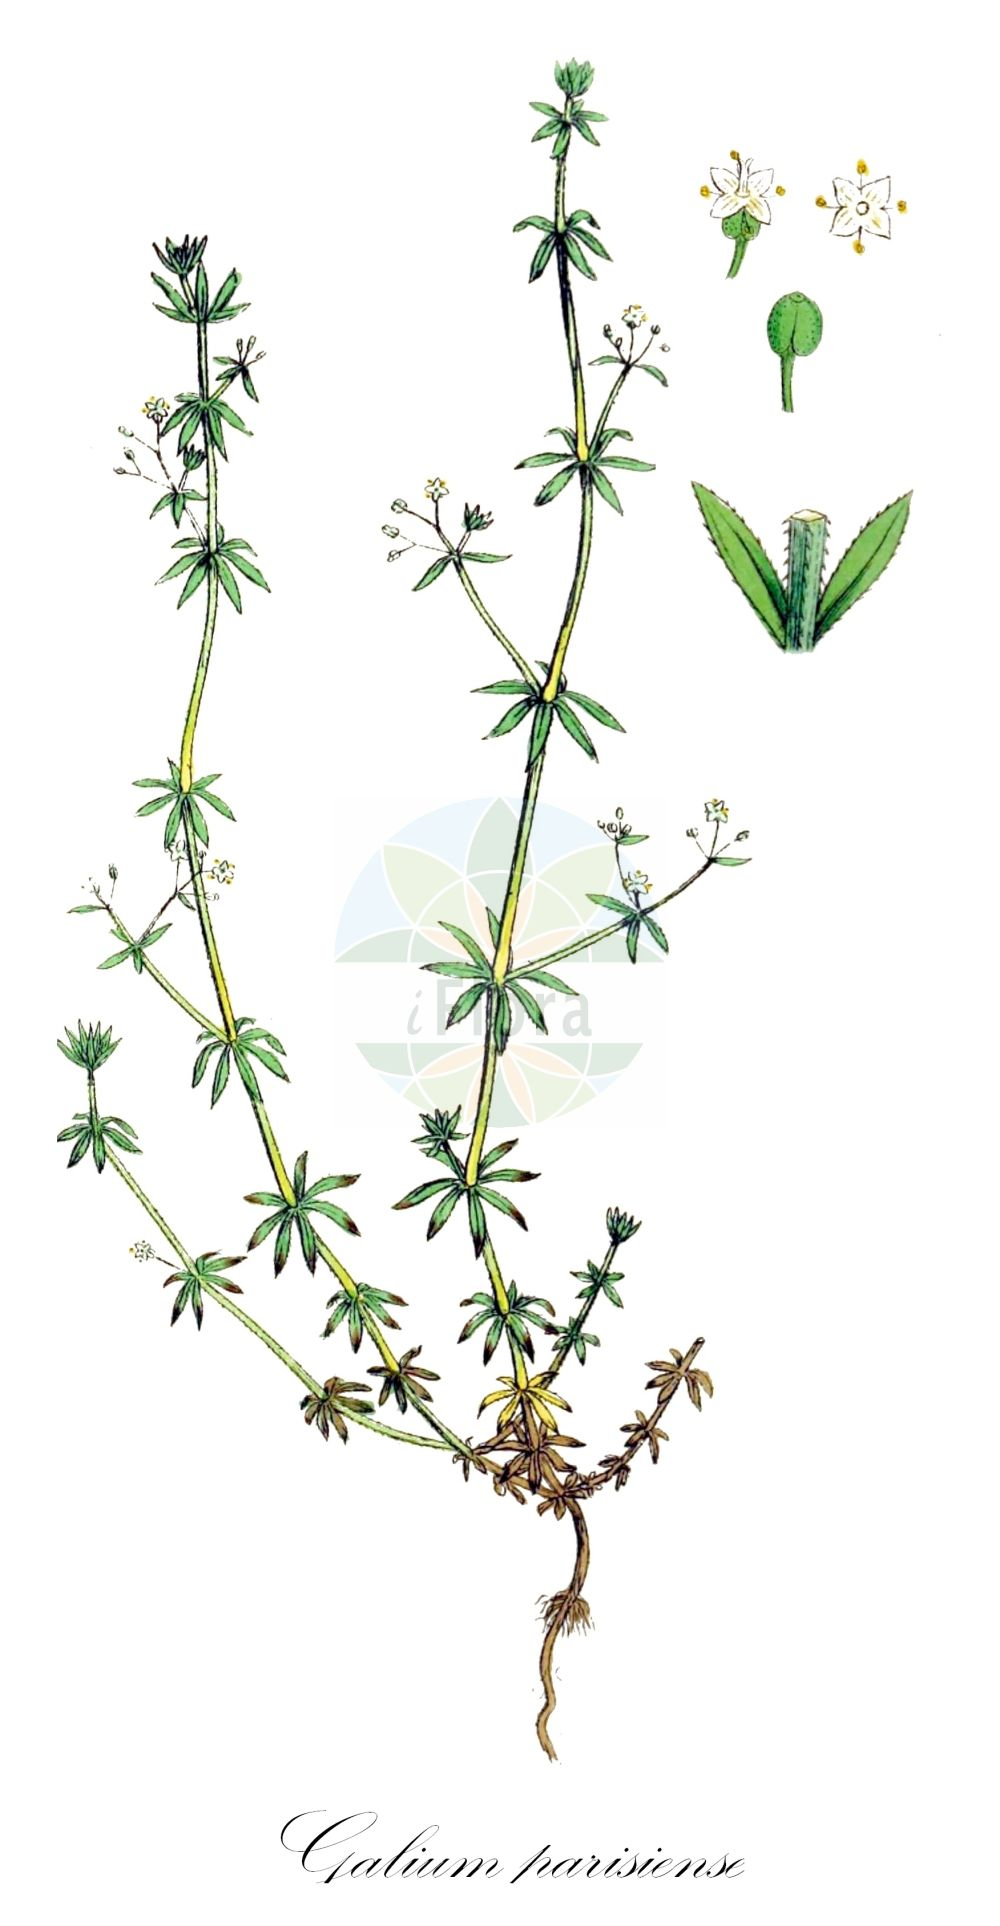 Historische Abbildung von Galium parisiense (Pariser Labkraut - Wall Bedstraw). Das Bild zeigt Blatt, Bluete, Frucht und Same. ---- Historical Drawing of Galium parisiense (Pariser Labkraut - Wall Bedstraw).The image is showing leaf, flower, fruit and seed.(Galium parisiense,Pariser Labkraut,Wall Bedstraw,Galium aparinella,Galium tenellum,Paris Bedstraw,Lamarck's Bedstraw,Slender Bedstraw,Galium,Labkraut,Bedstraw,Rubiaceae,Roetegewaechse;Kaffeegewaechse;Krappgewaechse;Labkrautgewaechse,Bedstraw family,Blatt,Bluete,Frucht,Same,leaf,flower,fruit,seed,Sowerby (1790-1813))